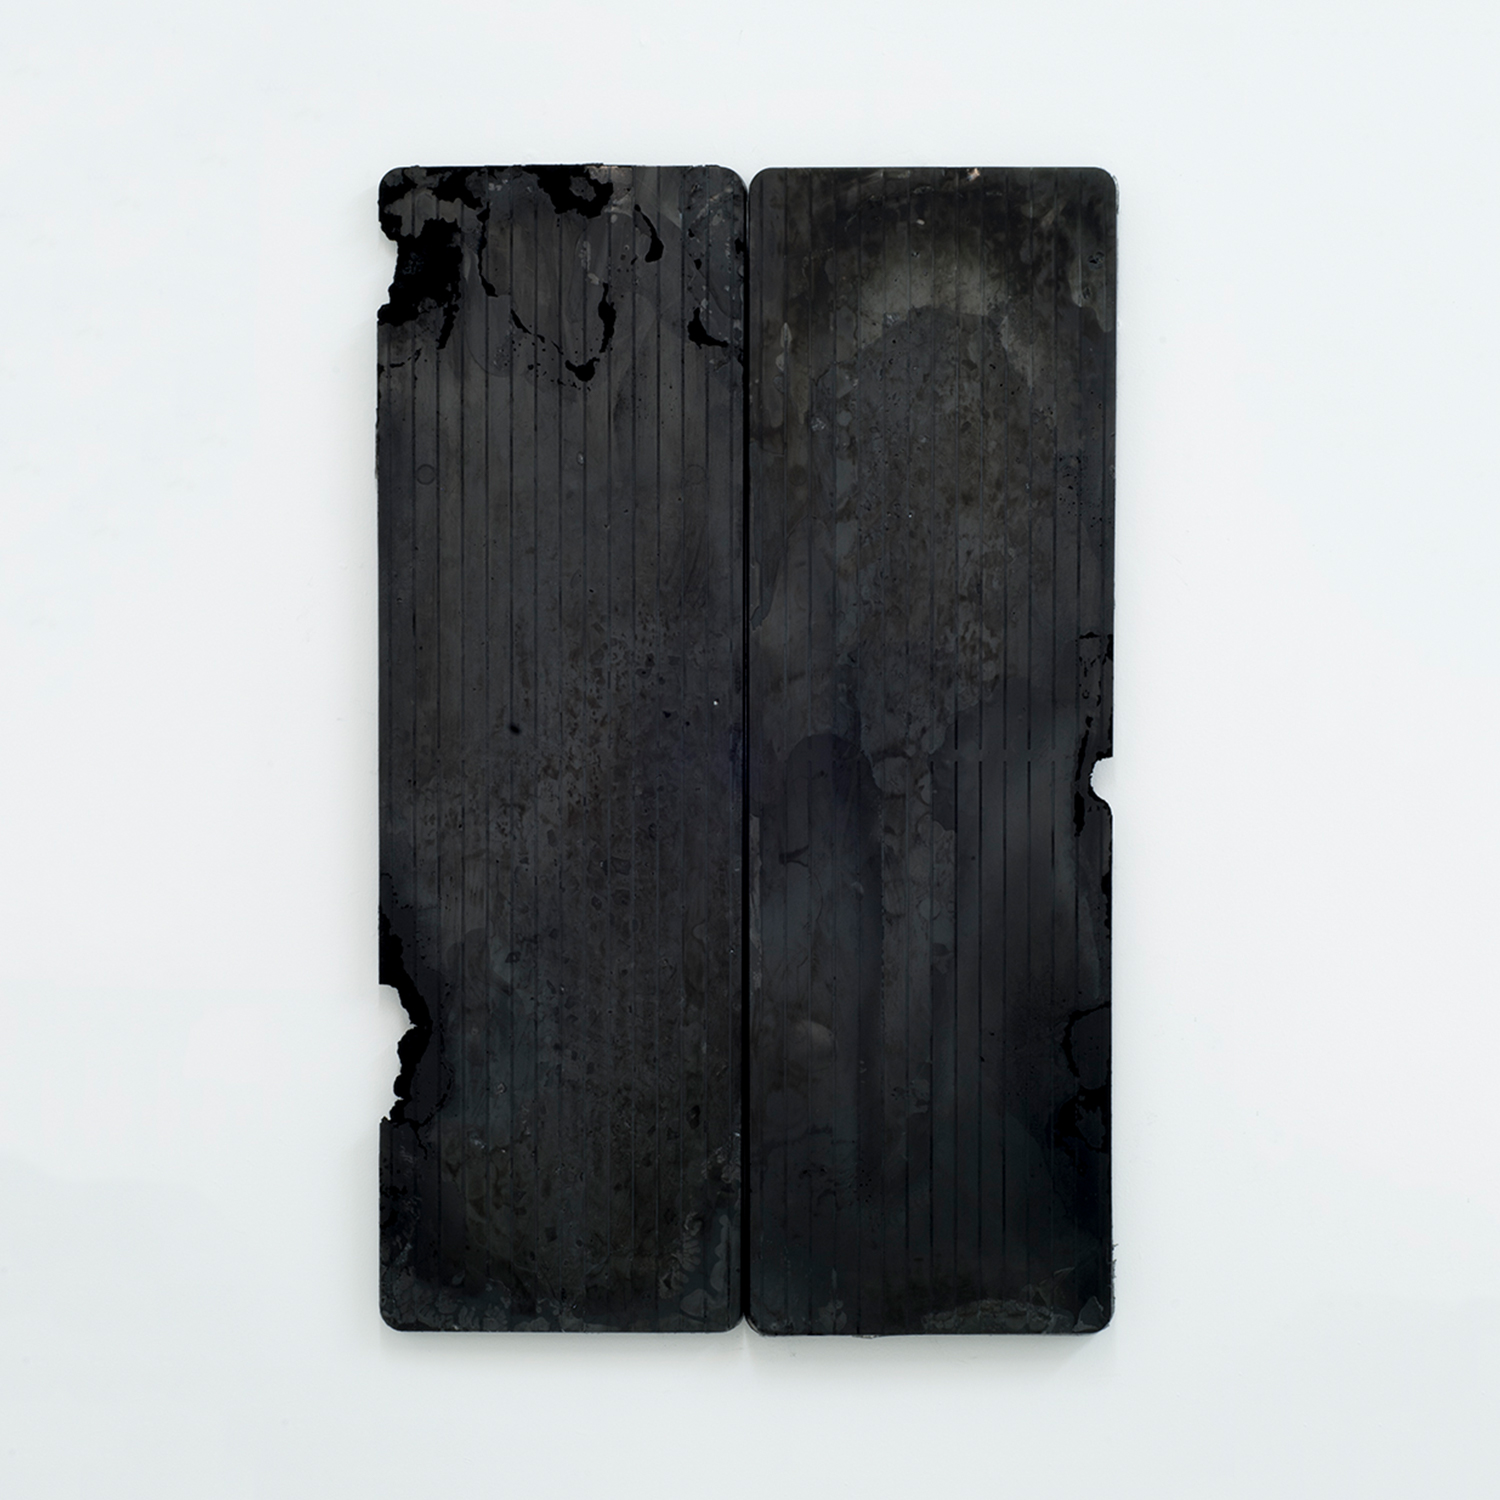 Carbon Form (diptych)   Marble, glass, dry pigment, resin 48 x 30 inches 122 x 76 cm 2018